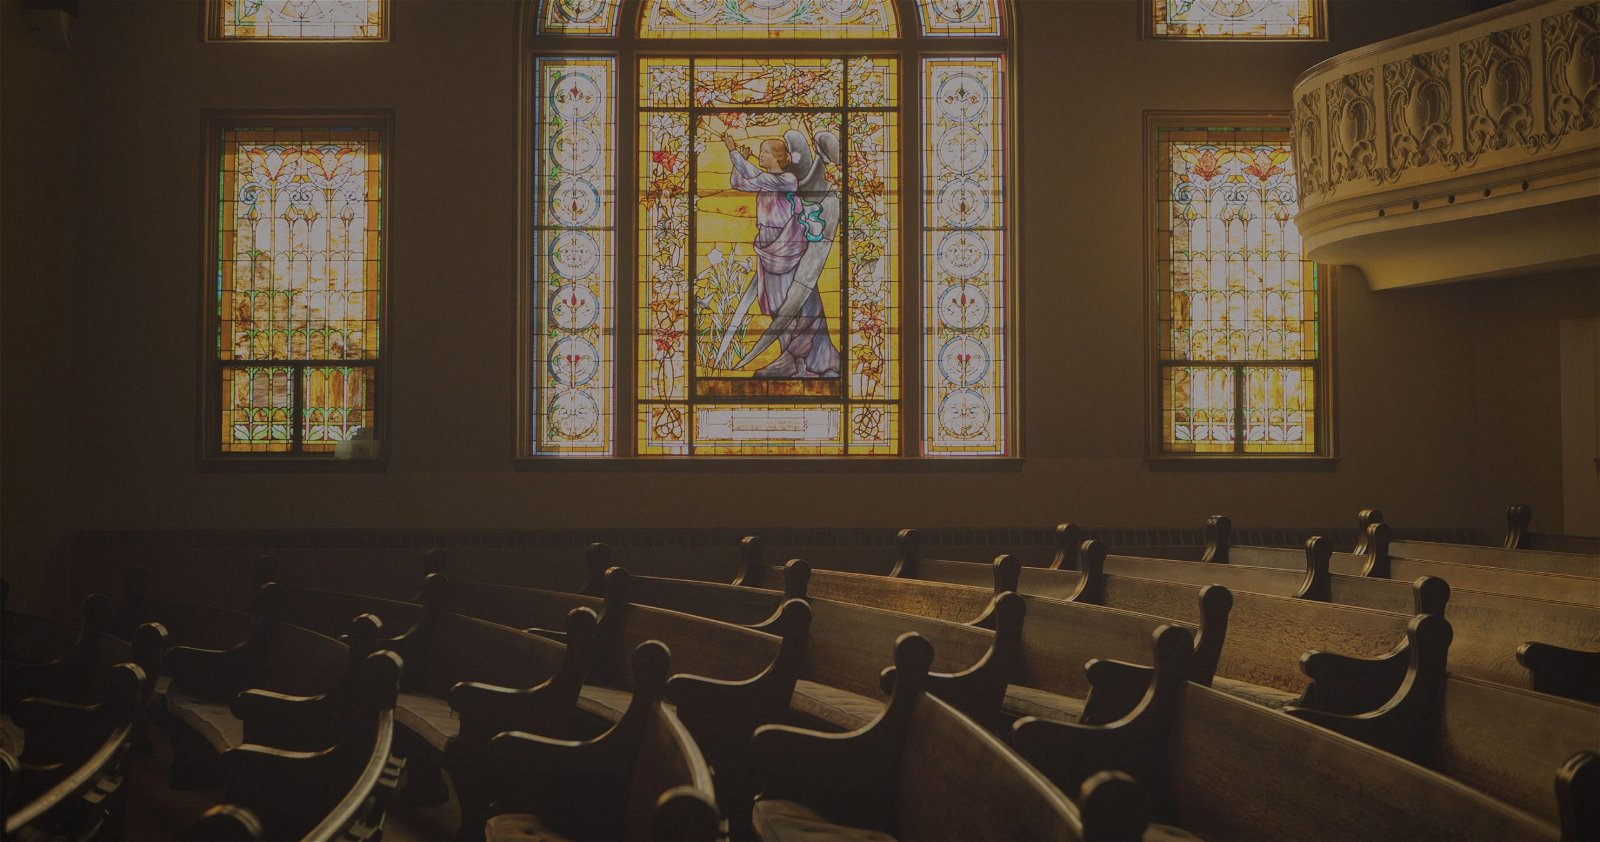 4 Lessons for Pastors from the Life and Ministry of John Calvin